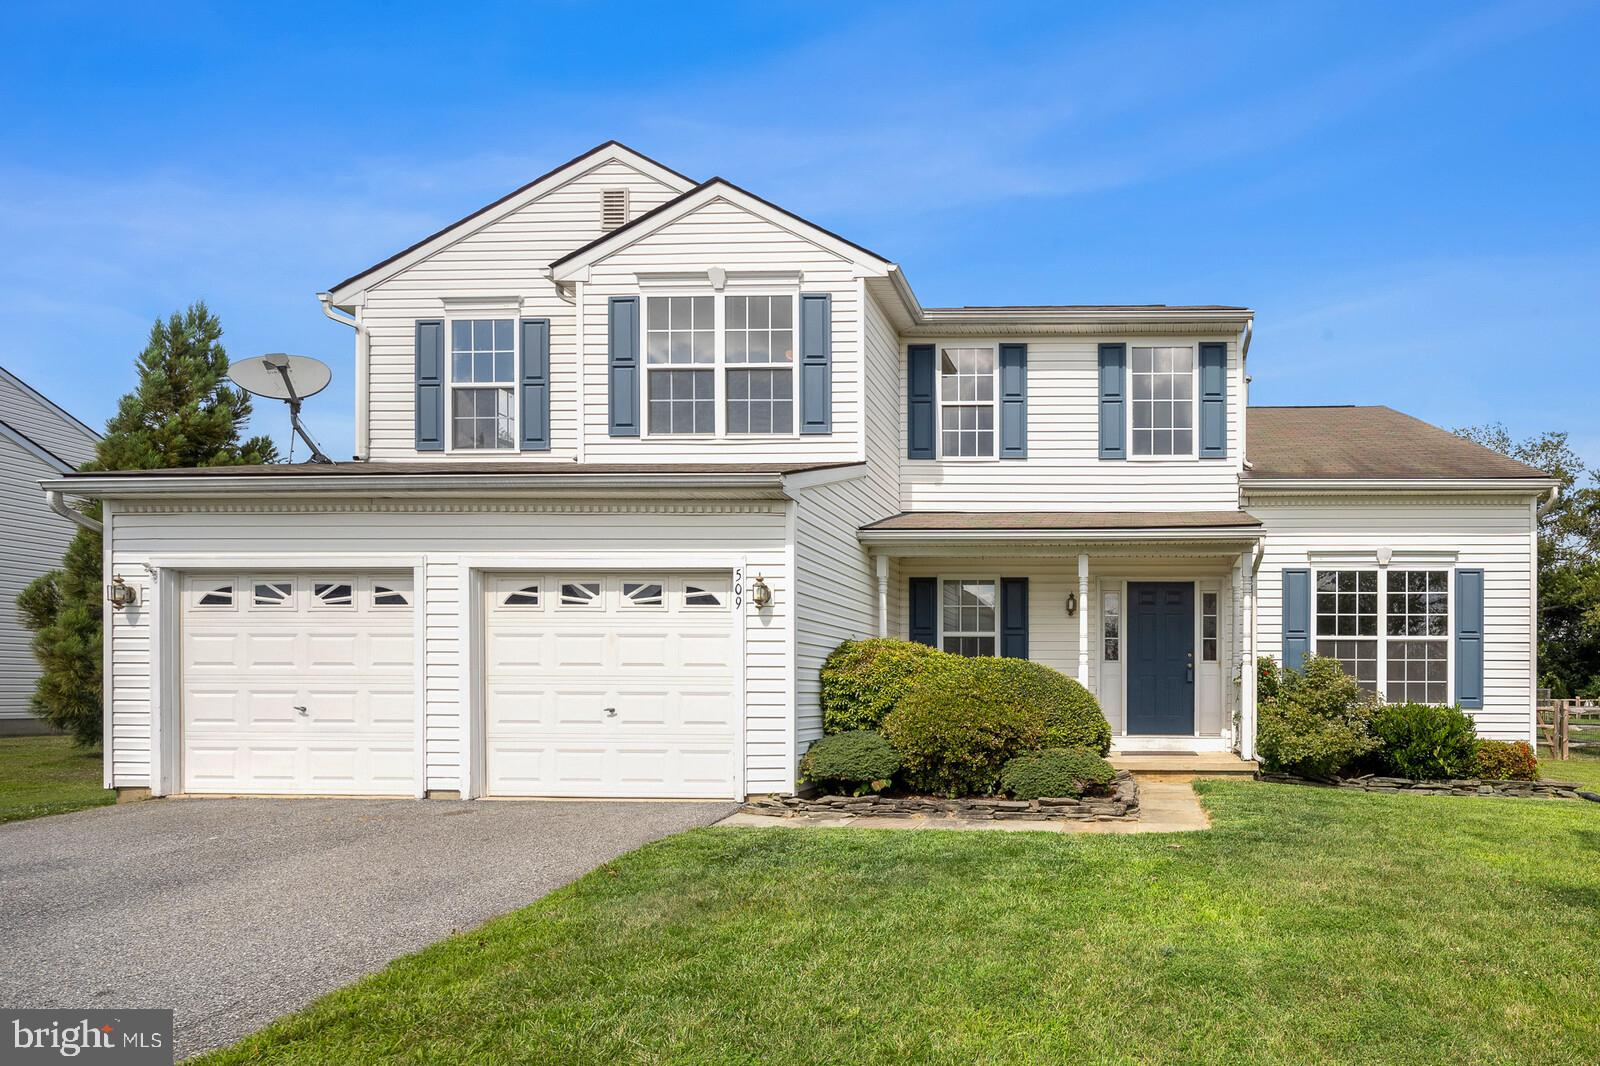 """LOCATION LOCATION LOCATION!!!  Don't miss out on this 4 bedroom 2.5 bathroom Colonial in the desirable Lakeside community located in sought after Appoquinimink School District.  This home is located just a short walk from Silver Lake Park and Pool, Silver Lake Elementary, and the future site of the Southern New Castle County Library and Middletown YMCA.  Did I mention this home sits on .35 acres backing to trees and open fields?  Enjoy the large fenced yard or entertain on the spacious 35x16 deck. As you enter the front door you are welcomed into the foyer with cathedral ceilings and hardwood floors.  On the main floor enjoy your living room w/vaulted ceiling which then leads through elegant columns to formal dining room.  Additionally the first floor features an eat-in kitchen w/42"""" raised panel cherry cabinets, center island and pantry.  Last but not least relax in your family room w/gas fireplace.  As you make your way upstairs you will find 4 bedrooms, 2 full baths and a conveniently located 2nd story laundry.  The large owners suite includes vaulted ceilings, dual walk-in closets, bath w/dual vanities and soaking tub.  Recent updates include new carpeting on the staircase and upper level and fresh paint throughout much of the home.  Located just minutes from downtown restaurants and shopping while still feeling like a secluded oasis.  And if that wasn't enough, the sellers are offering a 1-year home warranty on the home.  Showings to begin on 7/15. Schedule your visit today.  This one won't last long."""